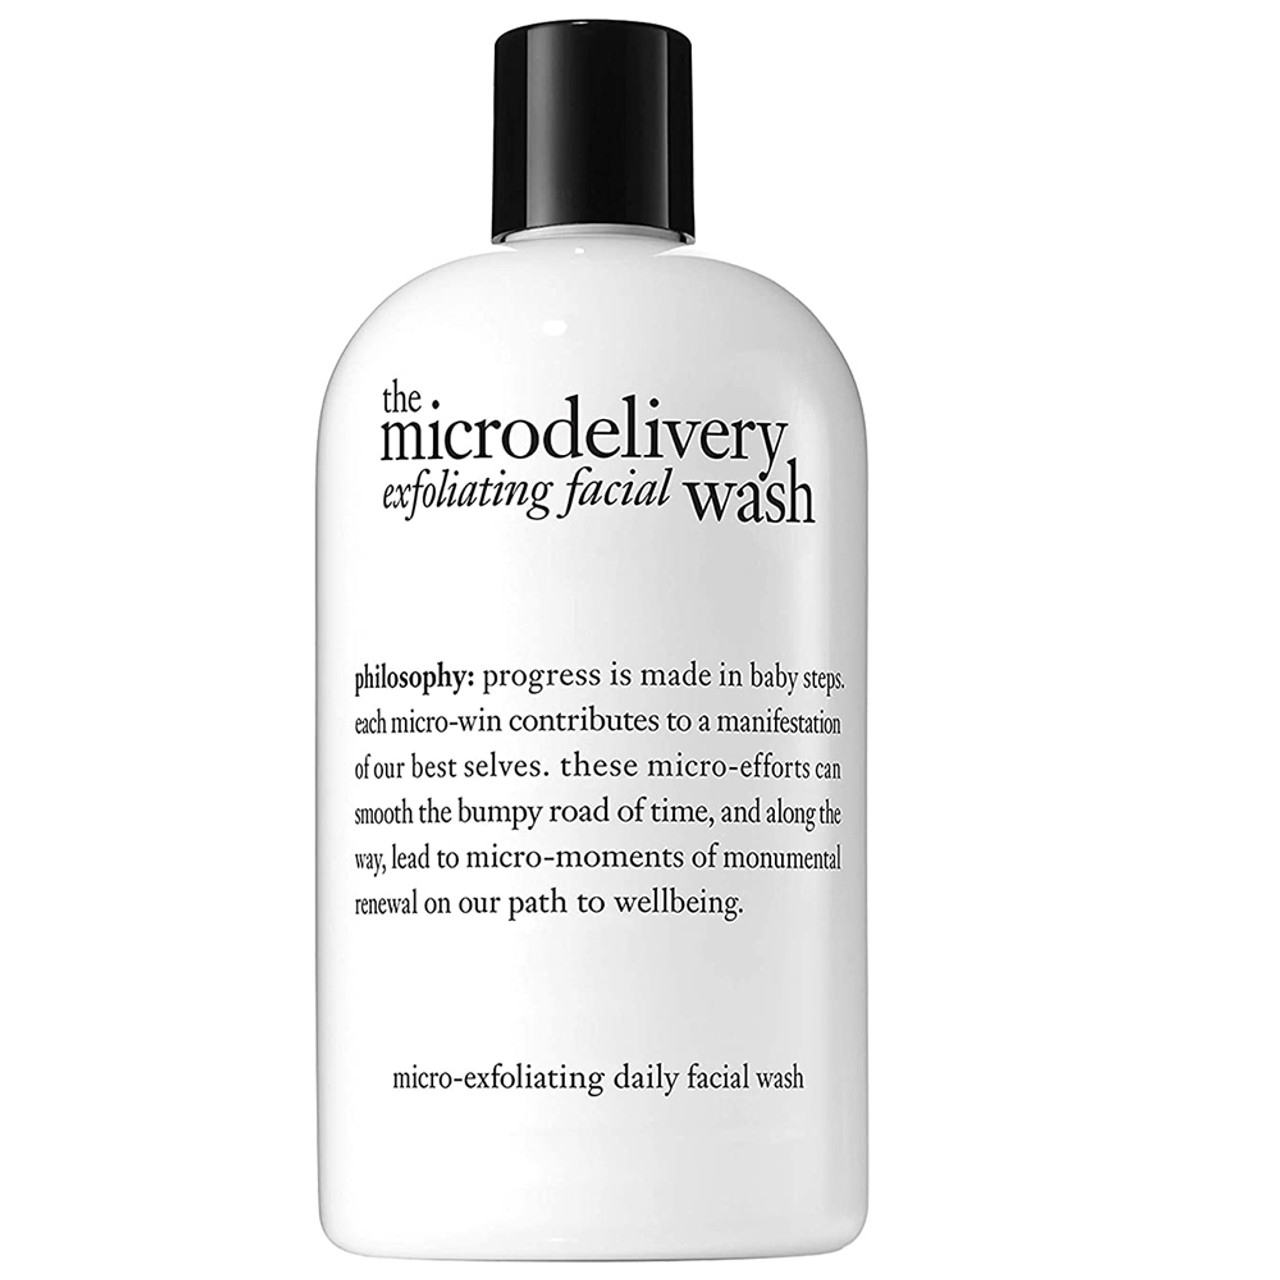 philosophy The Microdelivery Exfoliating Facial Wash BeautifiedYou.com